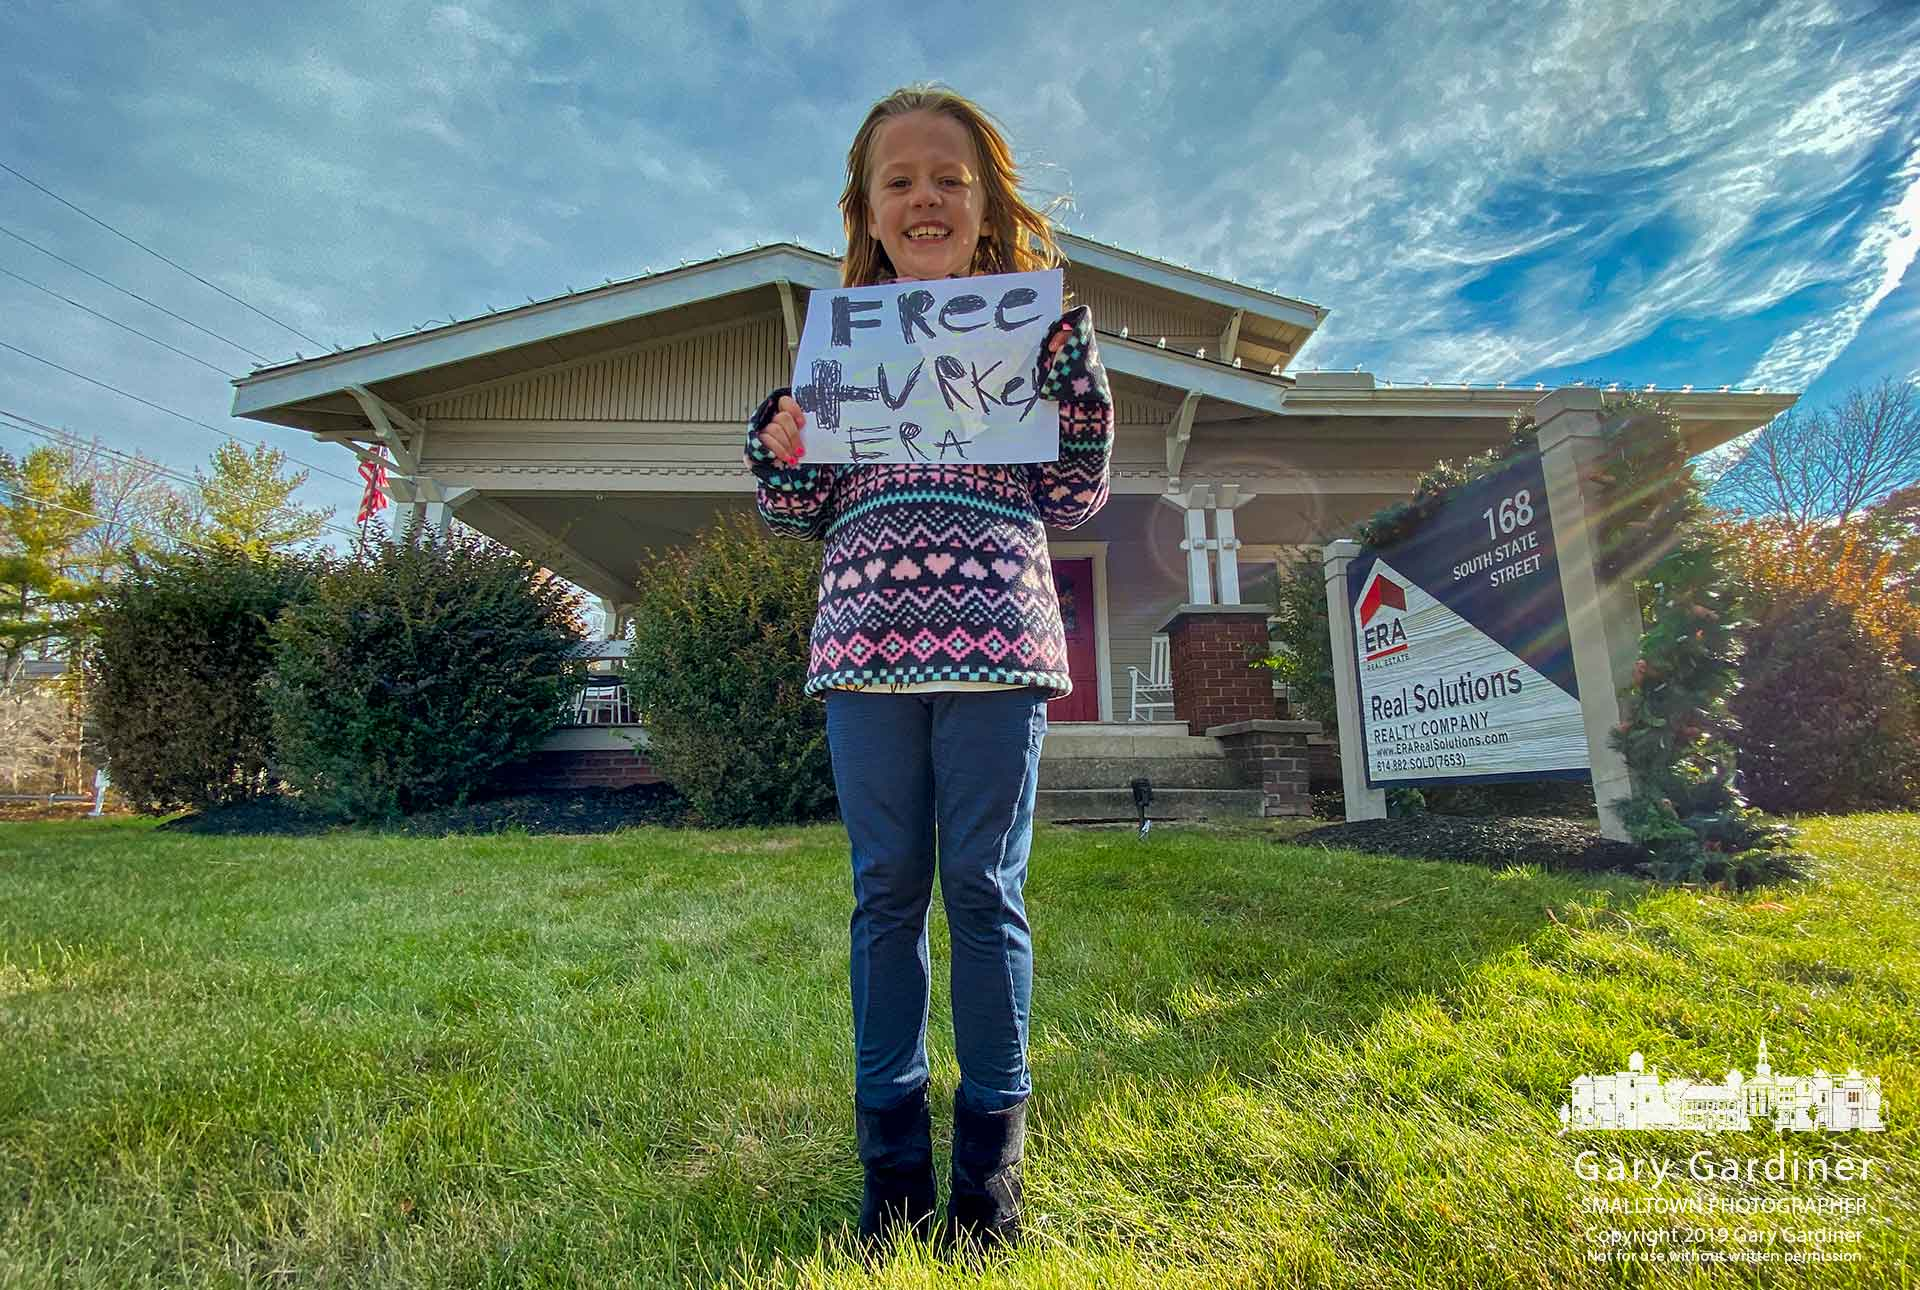 A young girl holds her hand-lettered sign where she advertised free turkeys for people dropping off four cans of food for W.A.R.M. at the ERA Realty office on South State Street. My Final Photo for Nov. 23, 2019.